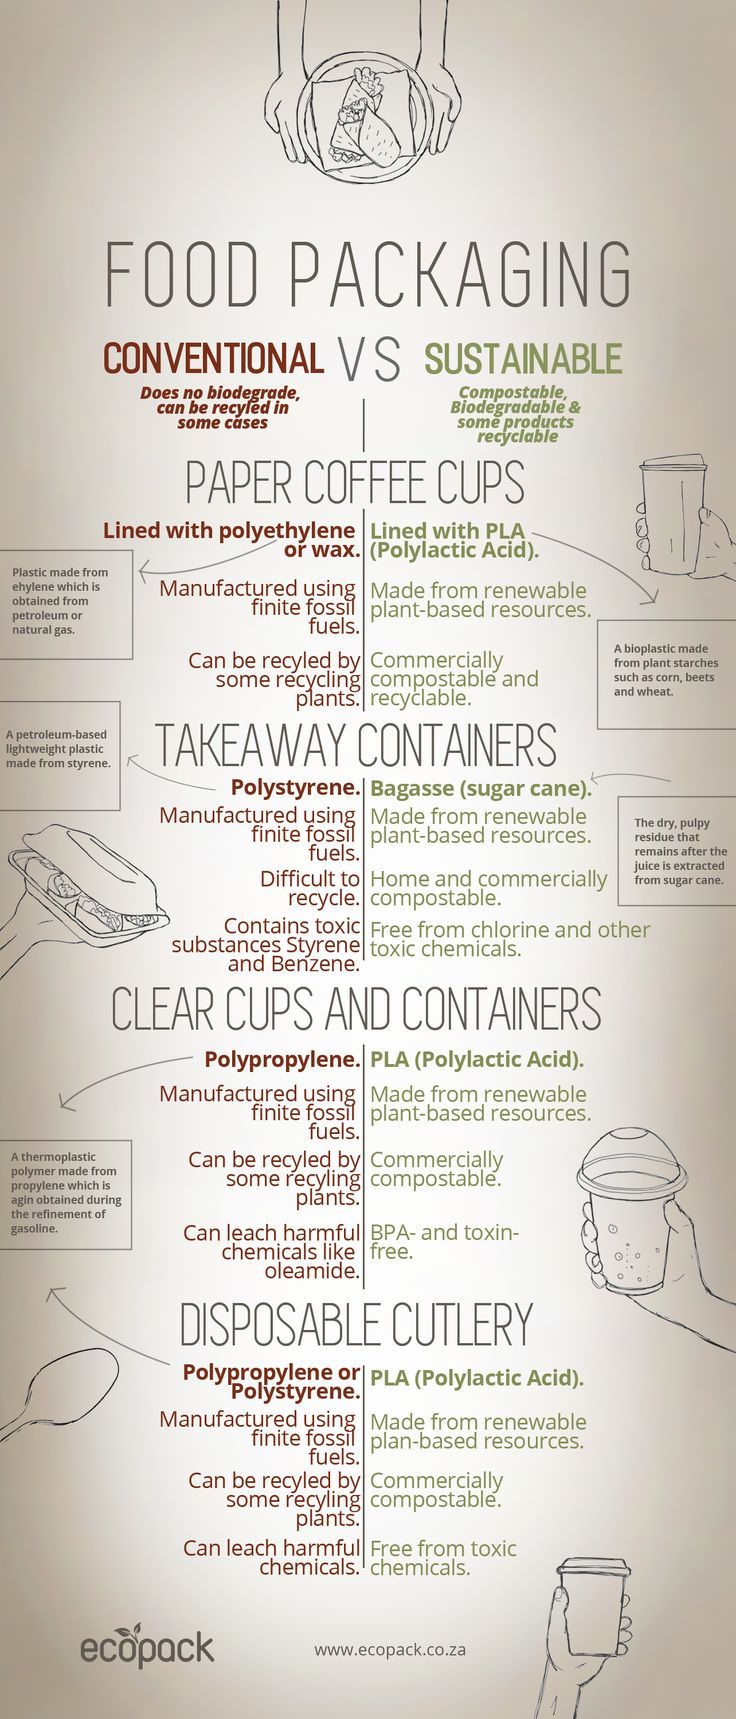 Conventional VS Sustainable Packaging - Infographic